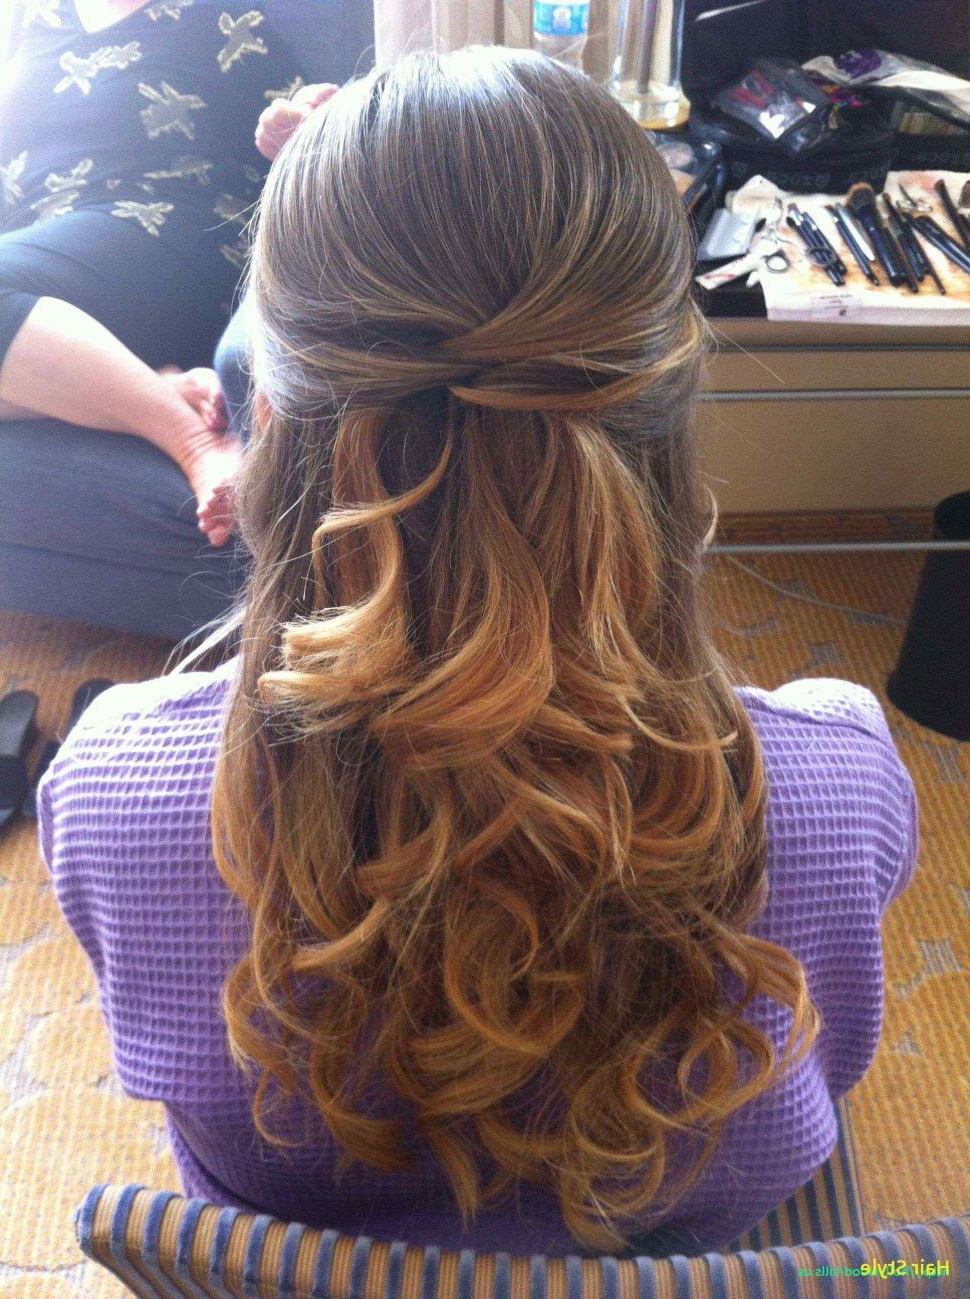 Hairstyles : Curls Half Up Hairstyle Adorable Fashion Within Well Known Curled Half Up Hairstyles (Gallery 9 of 20)